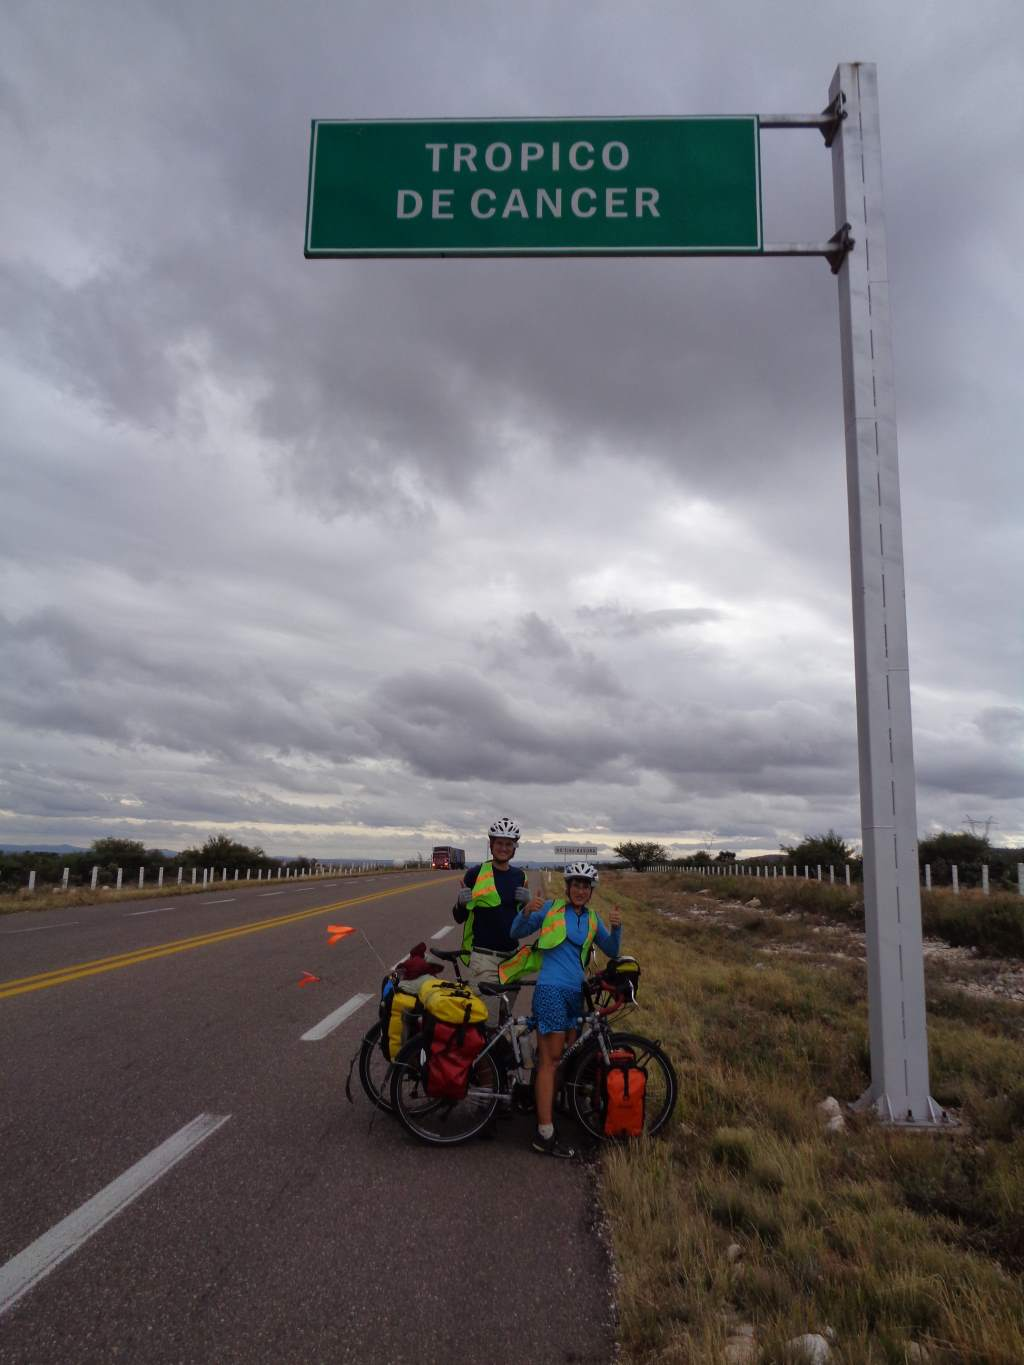 Another landmark: crossing the Tropic of Cancer, and going south this time!